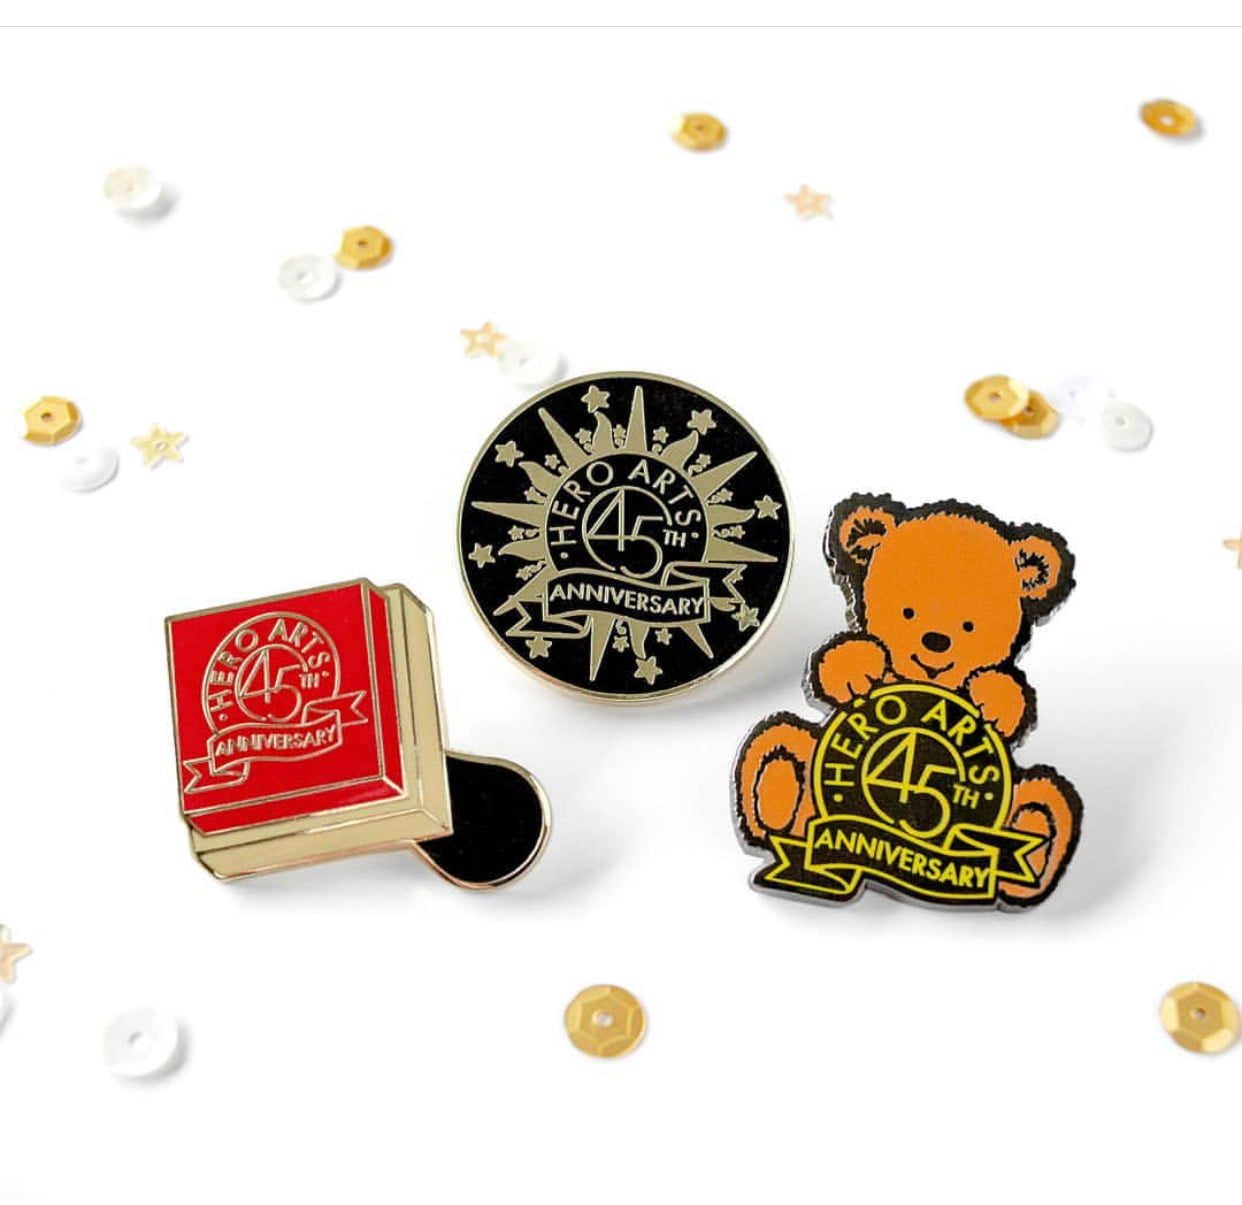 Hero_Arts_enamel_pins